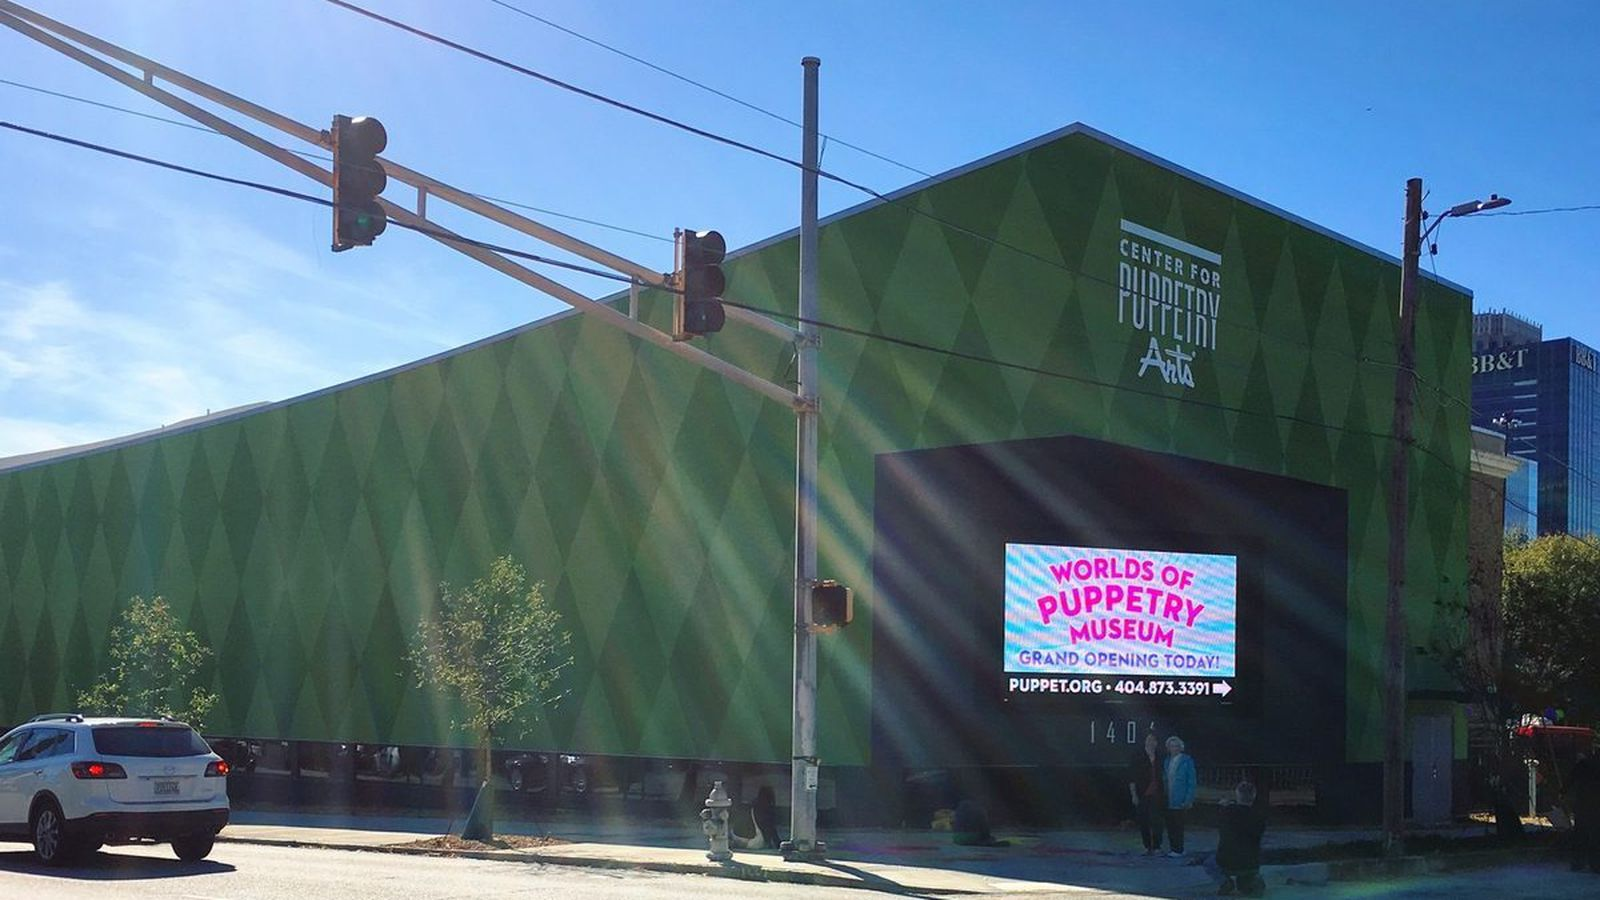 Nov 24, · Over the past 5 years, Atlanta has become something of a second home to me. During that time I think I have seen virtually all of the attractions in the area. However, I had always avoided the Center for Puppetry Arts/5().